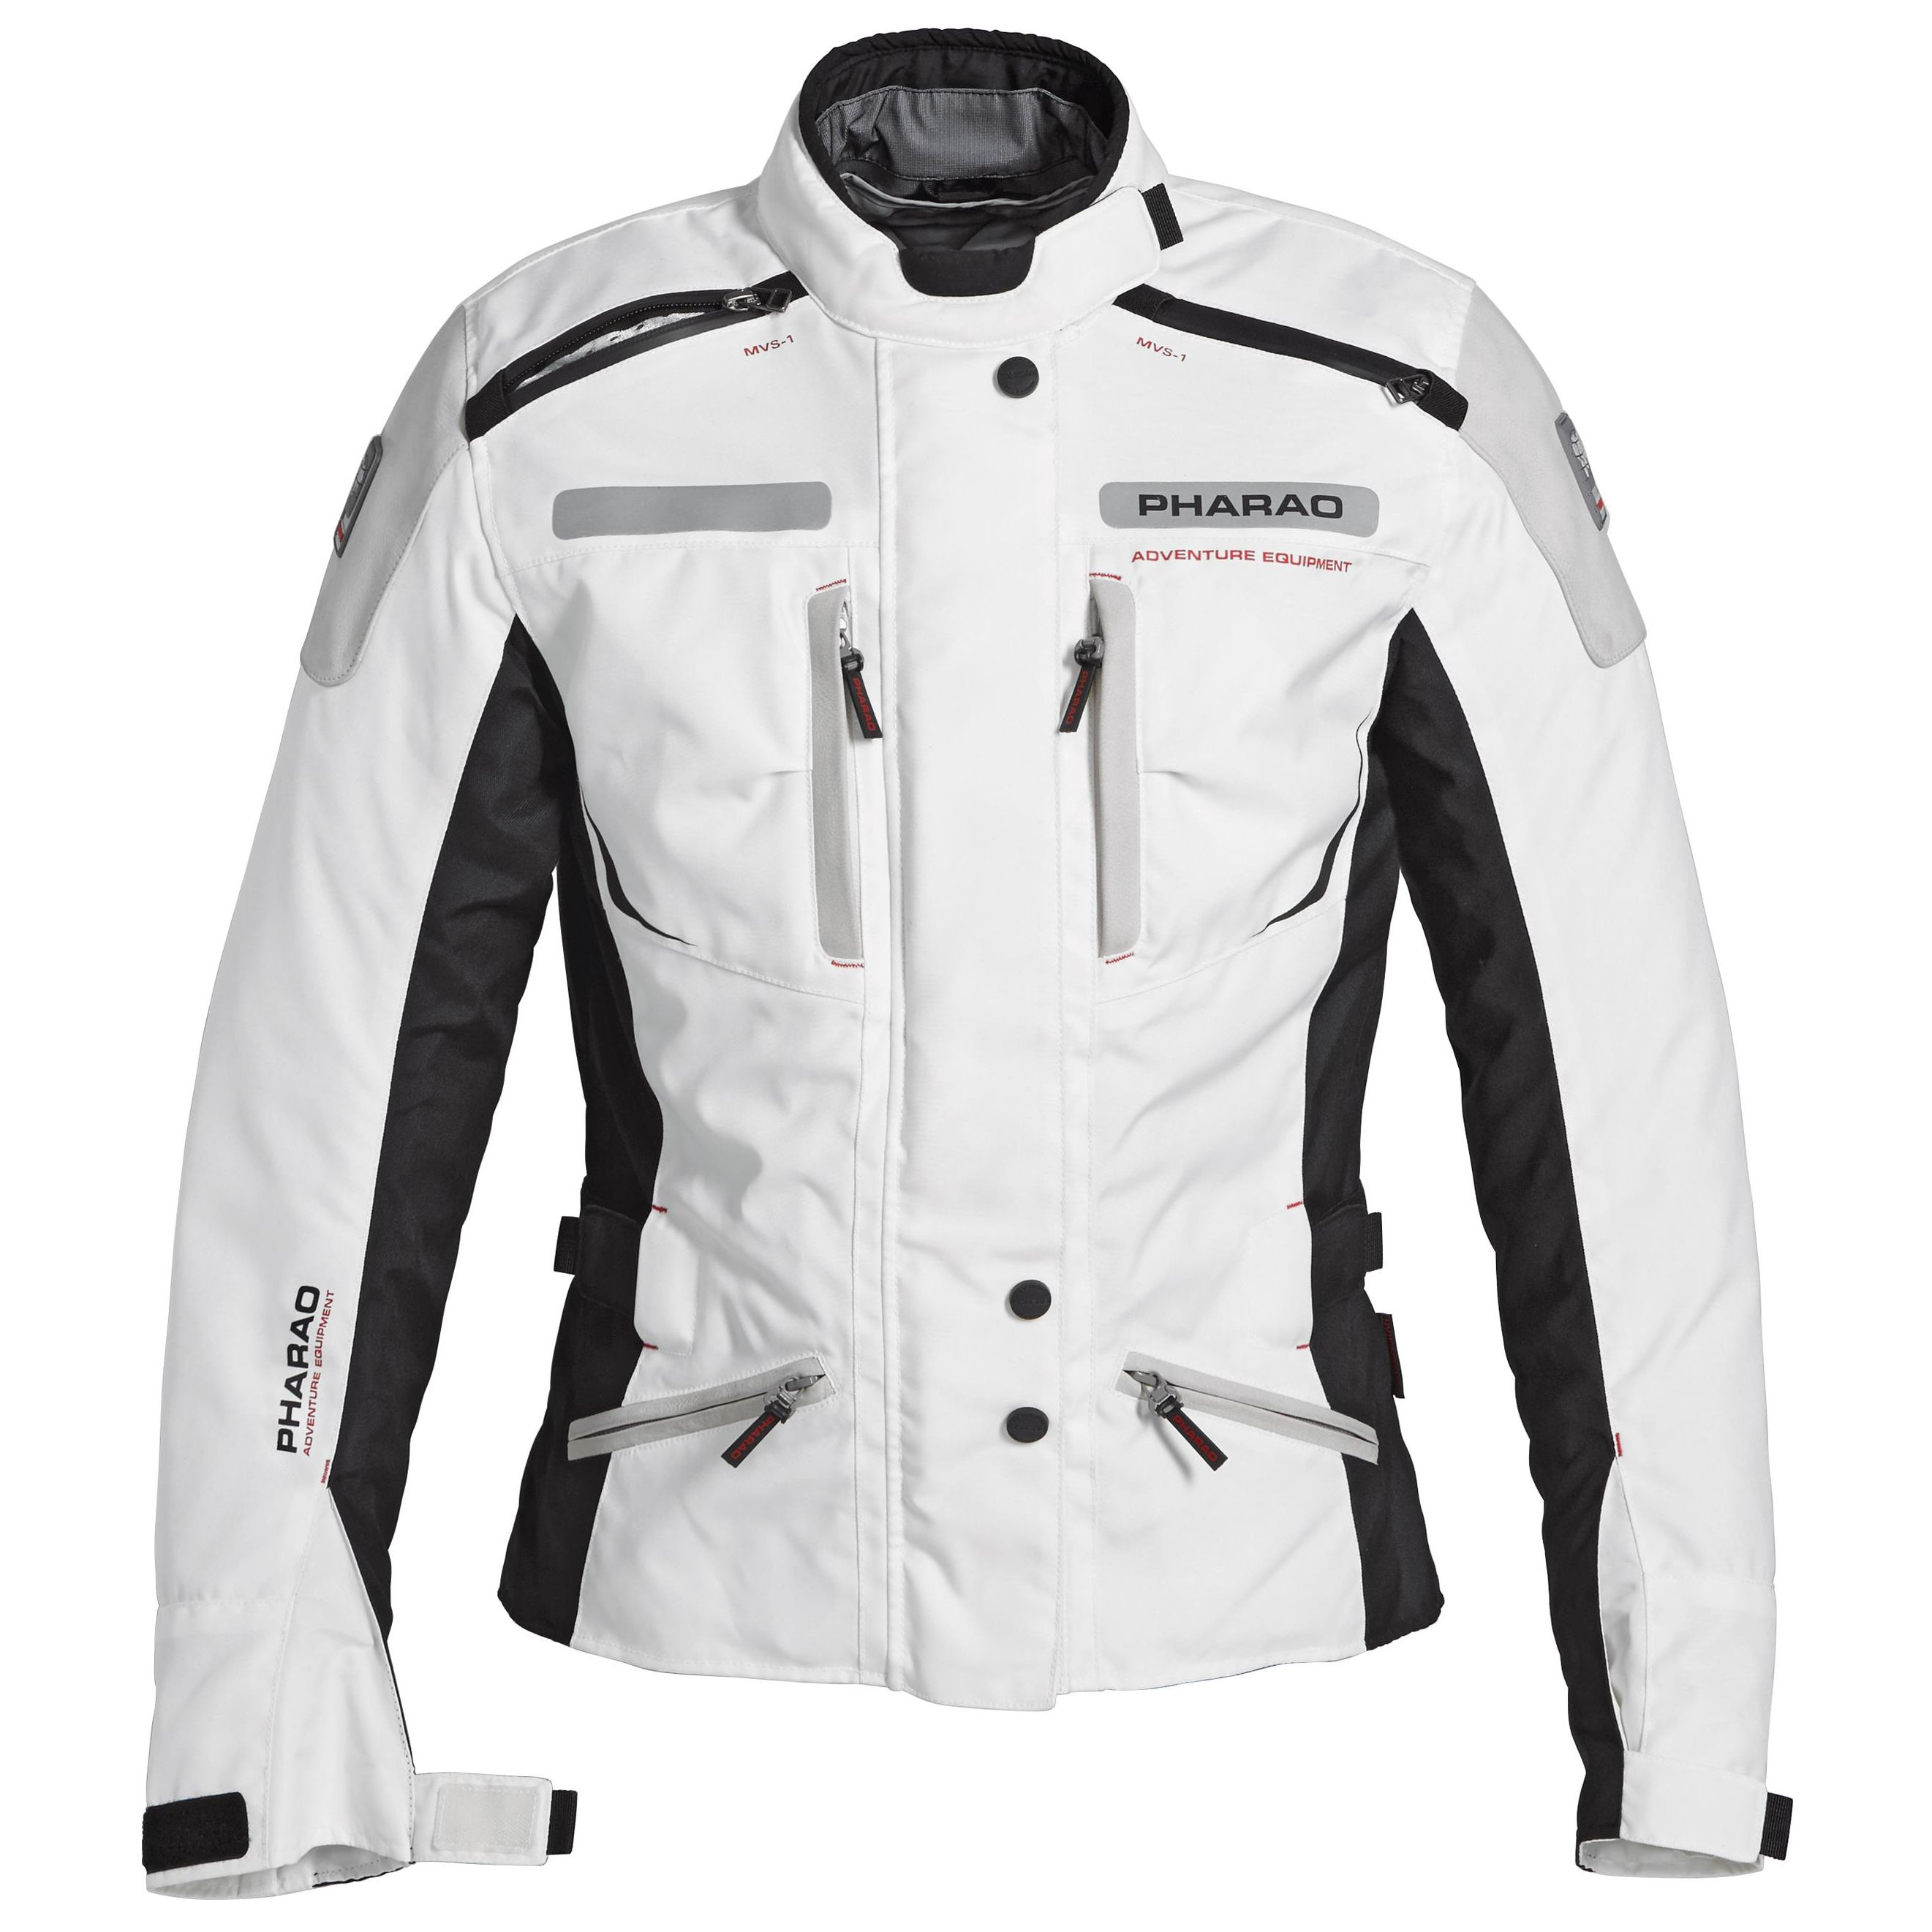 Veste Pharao Travel 2.1 Lady